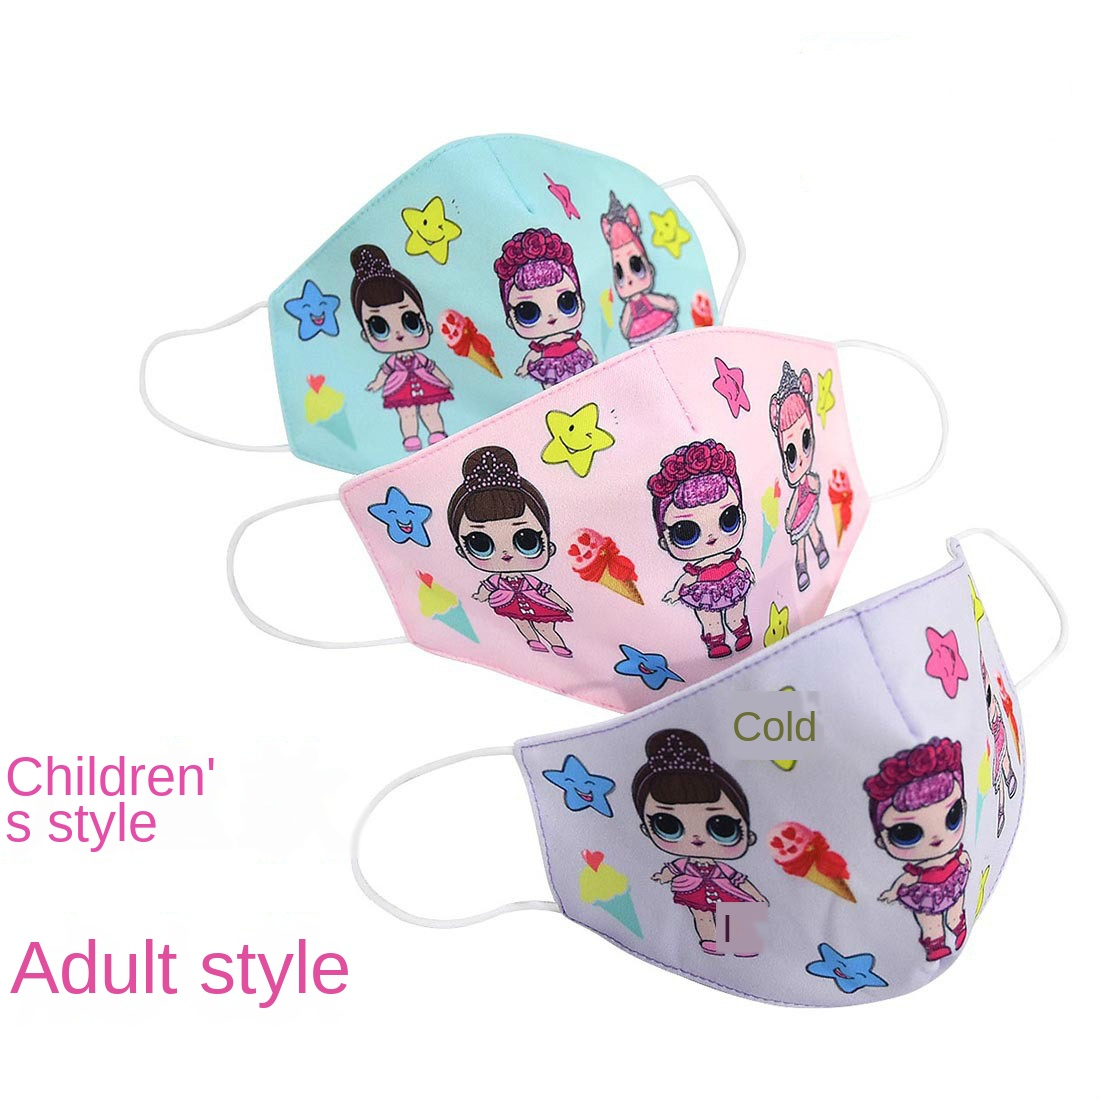 NEW L.O.L. SURPRISE! Half Muffle Face Mask Adult Kids Cottons Dustproof Cartoon Woman Men Lol Doll  Mouth Masks Mouth For Gift